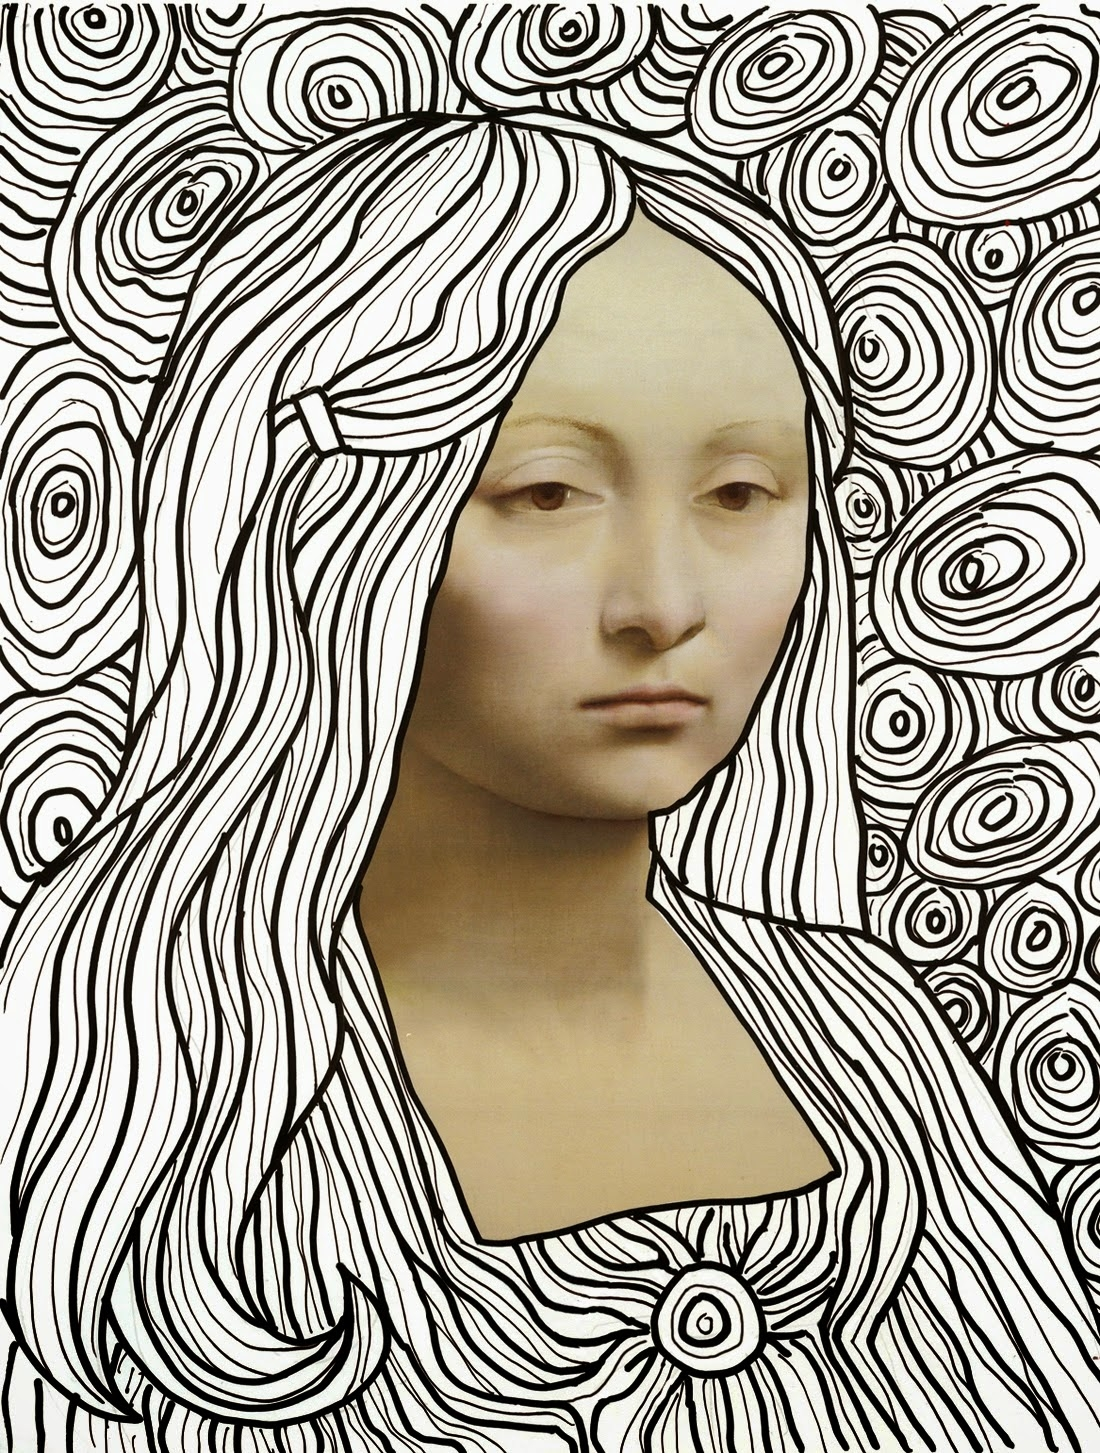 23 Mona Lisa Coloring Page Pictures | FREE COLORING PAGES ...